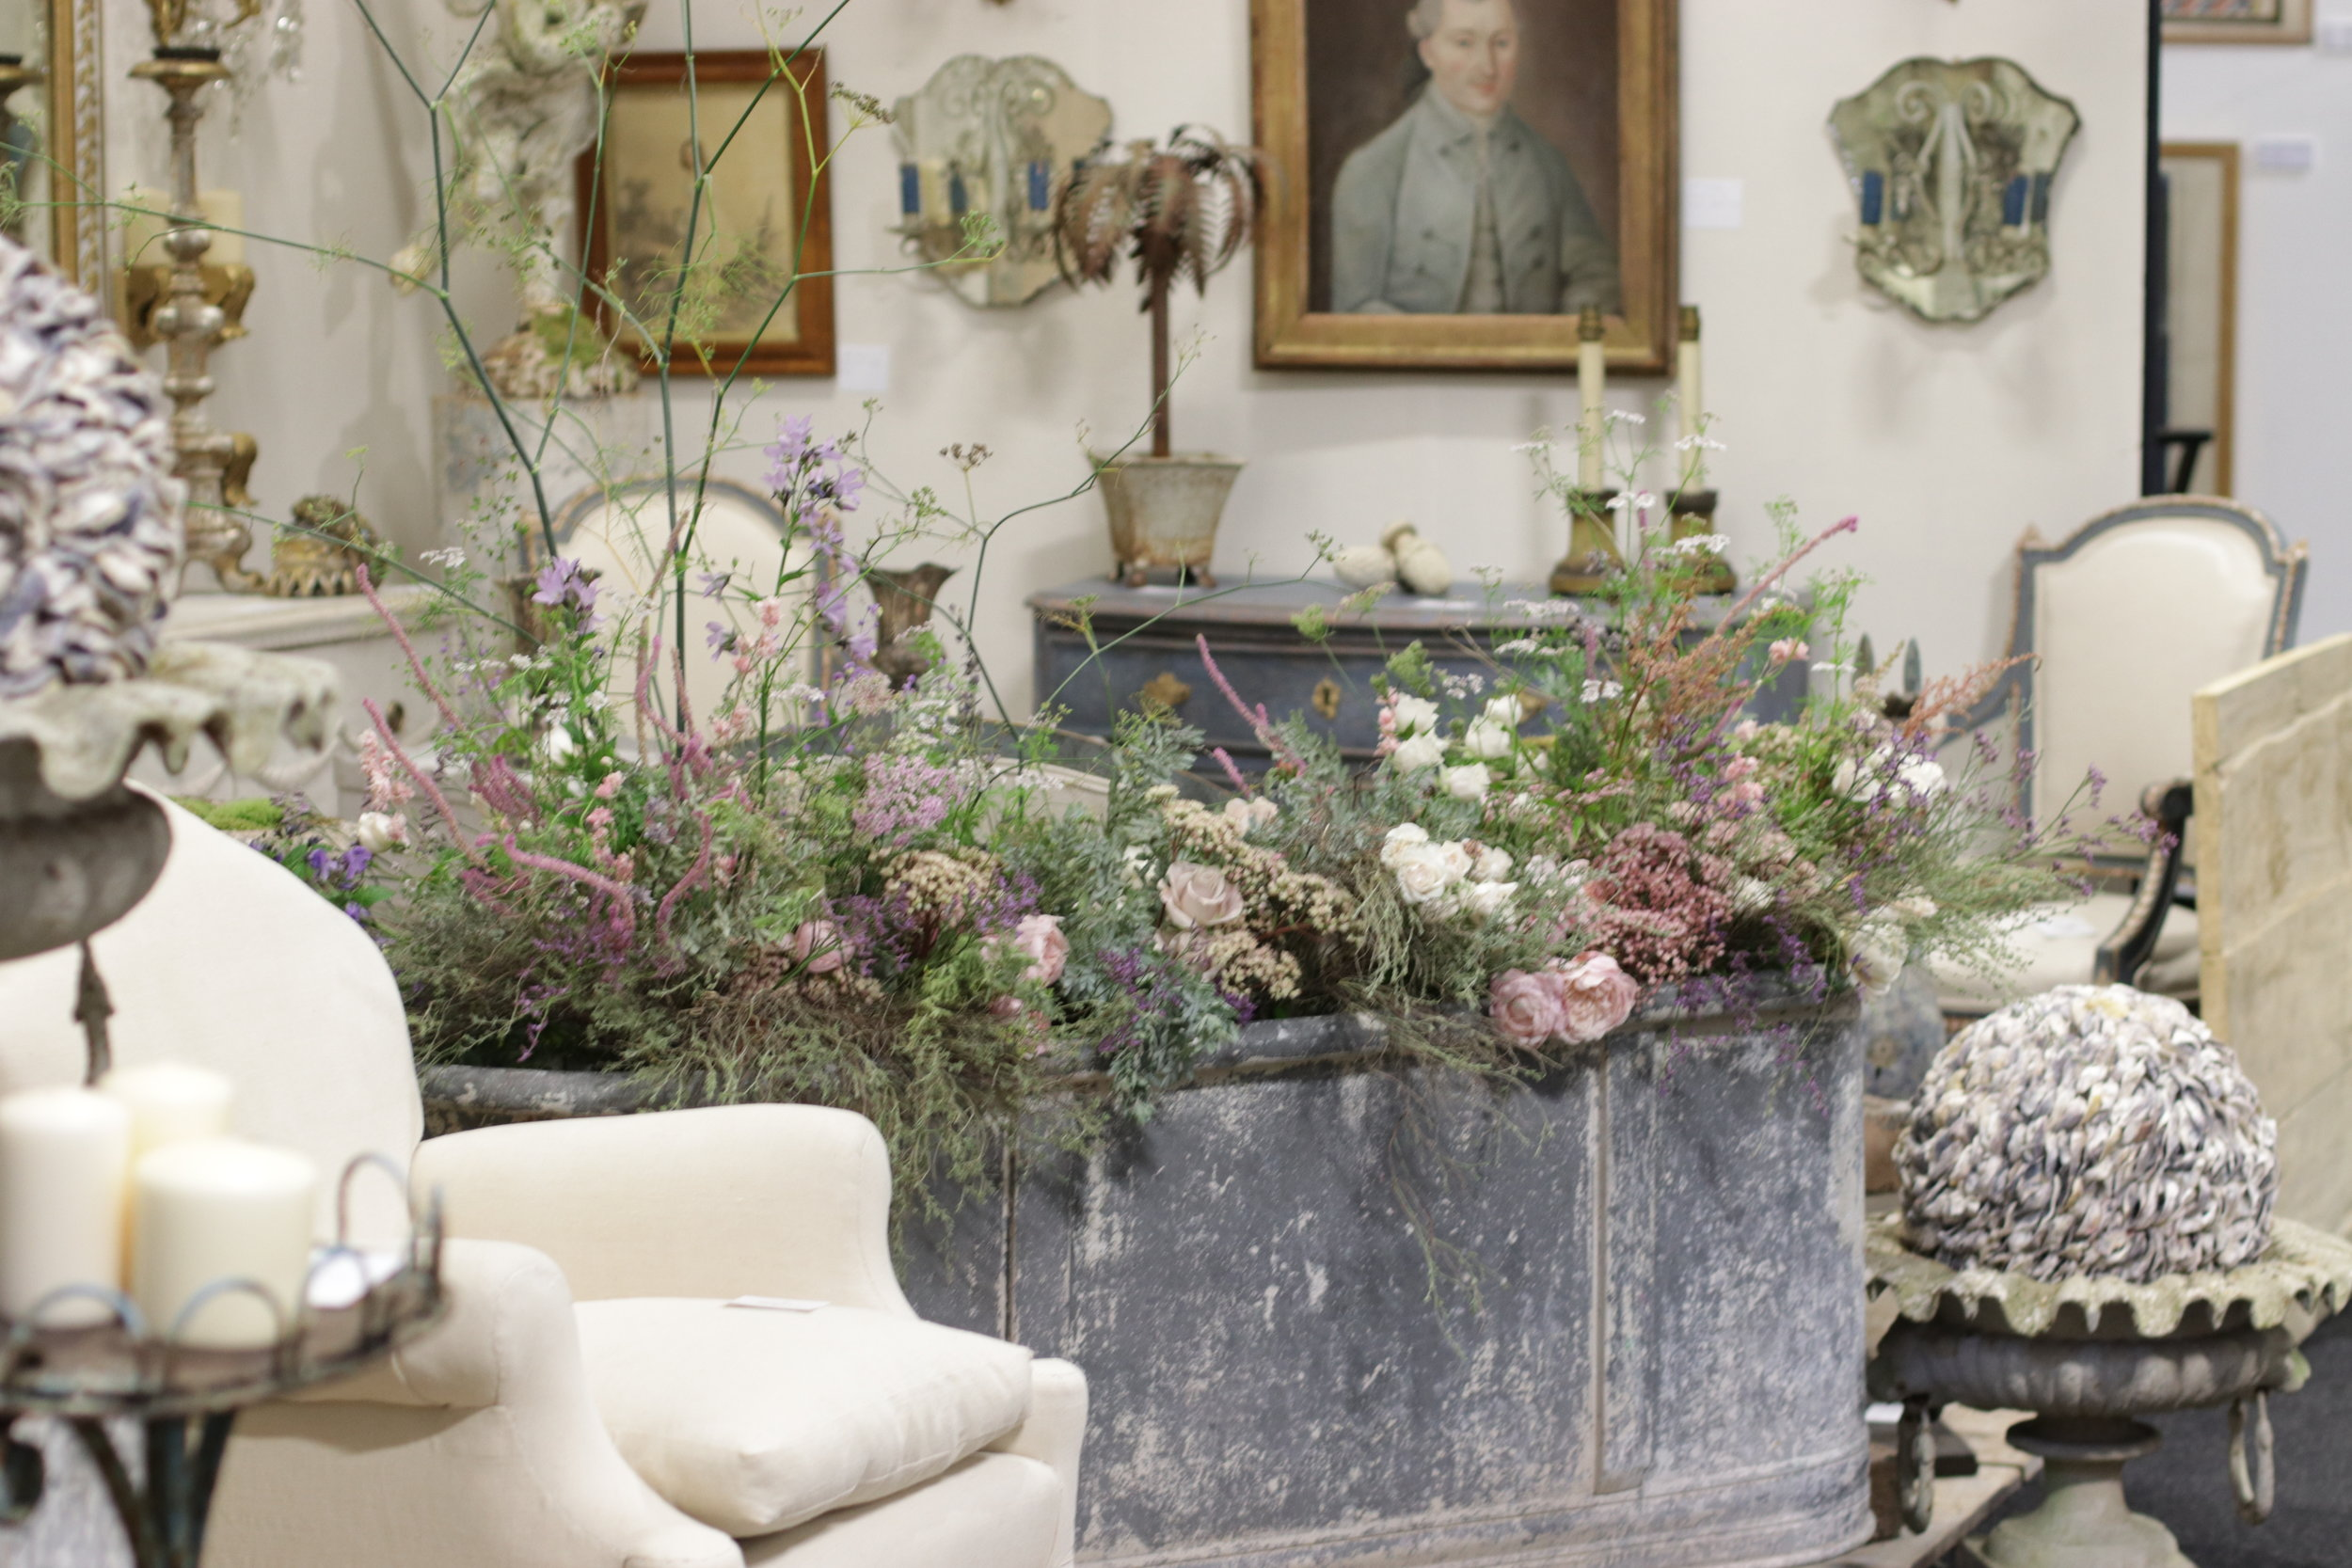 Supplying and styling florals for the Decorative Antiques and Textiles Fair in Battersea.